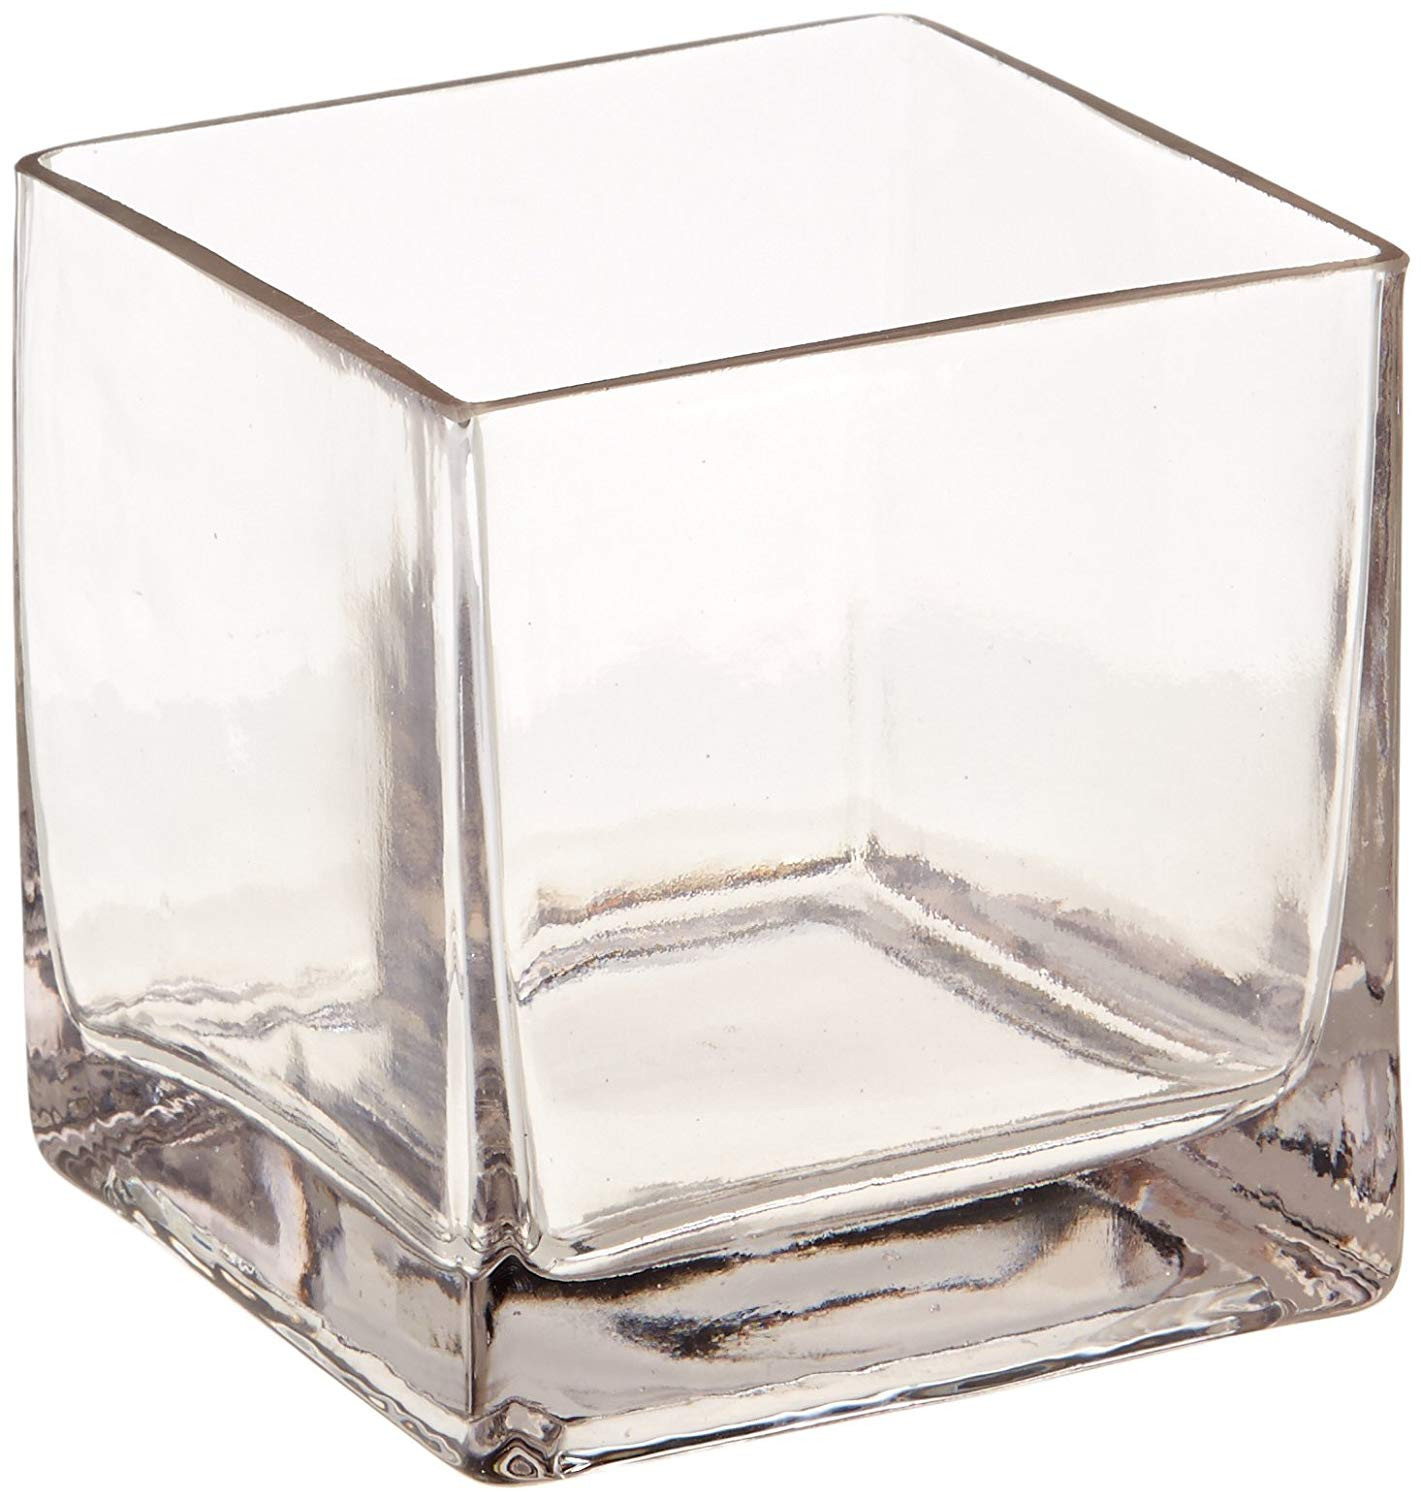 long clear glass vases of amazon com 12piece 4 square crystal clear glass vase home kitchen within 71 jezfmvnl sl1500